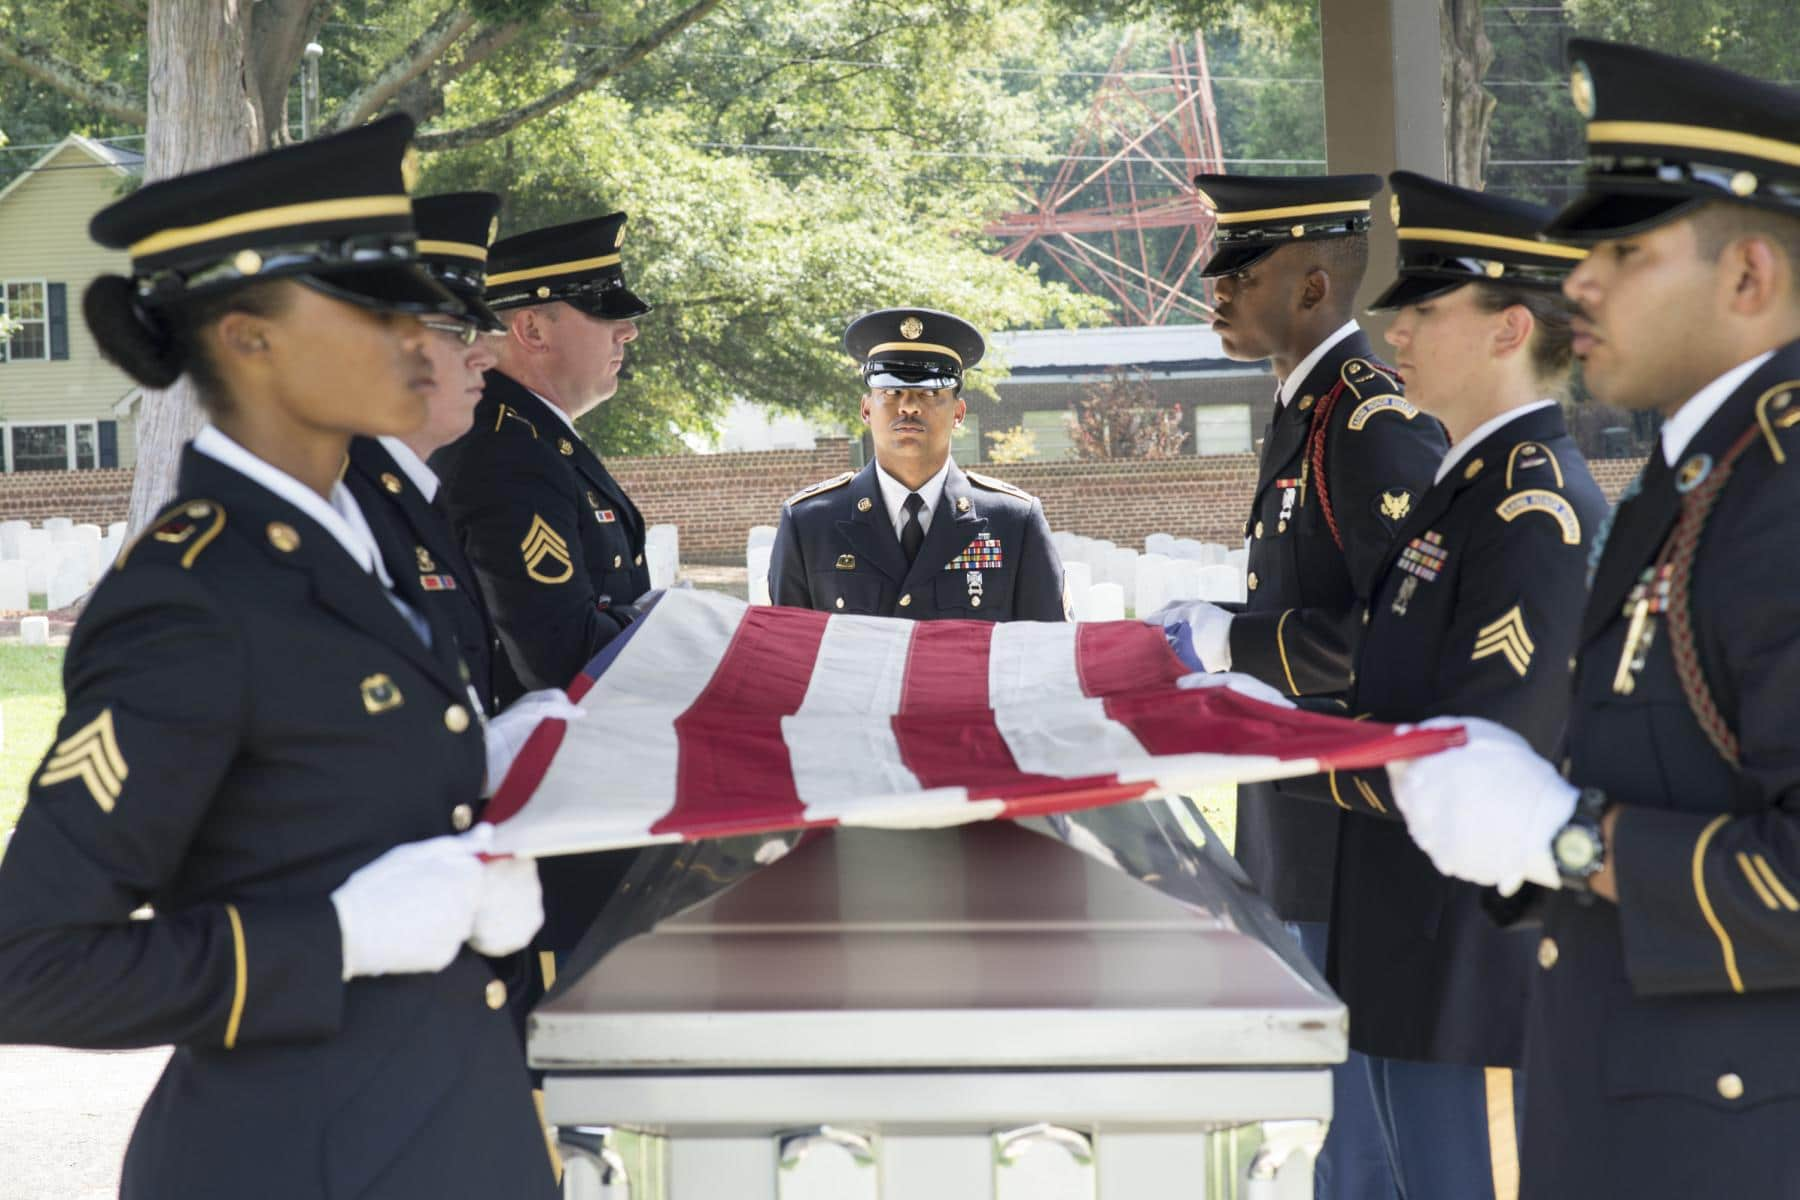 Veteran of Army and New Mexico National Guard remembered for dedicated service